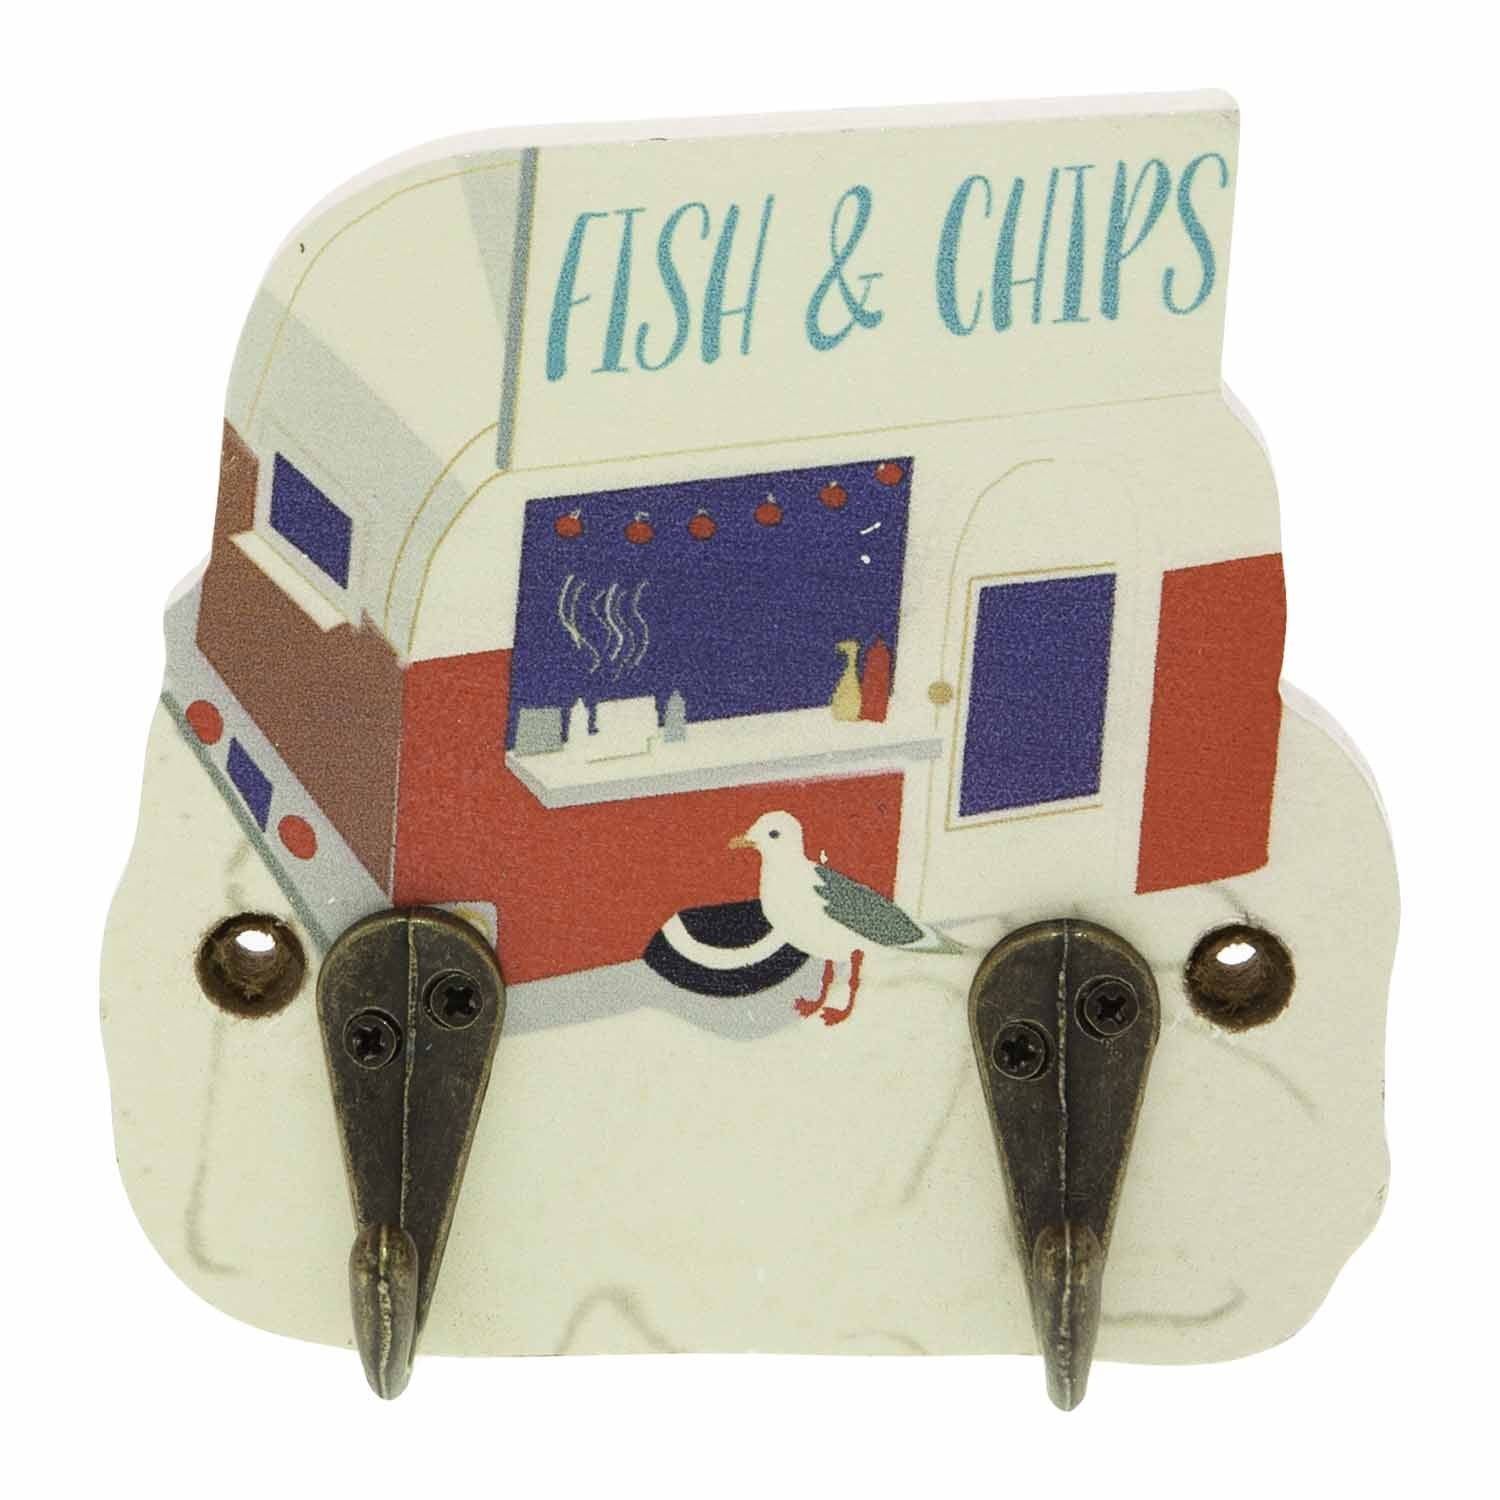 Dog Lover Gifts available at Dog Krazy Gifts – Jill White Rocket68 Ahoy Fish and Chip Van Hook Part Of The Set of 4 available at www.dogkrazygifts.co.uk